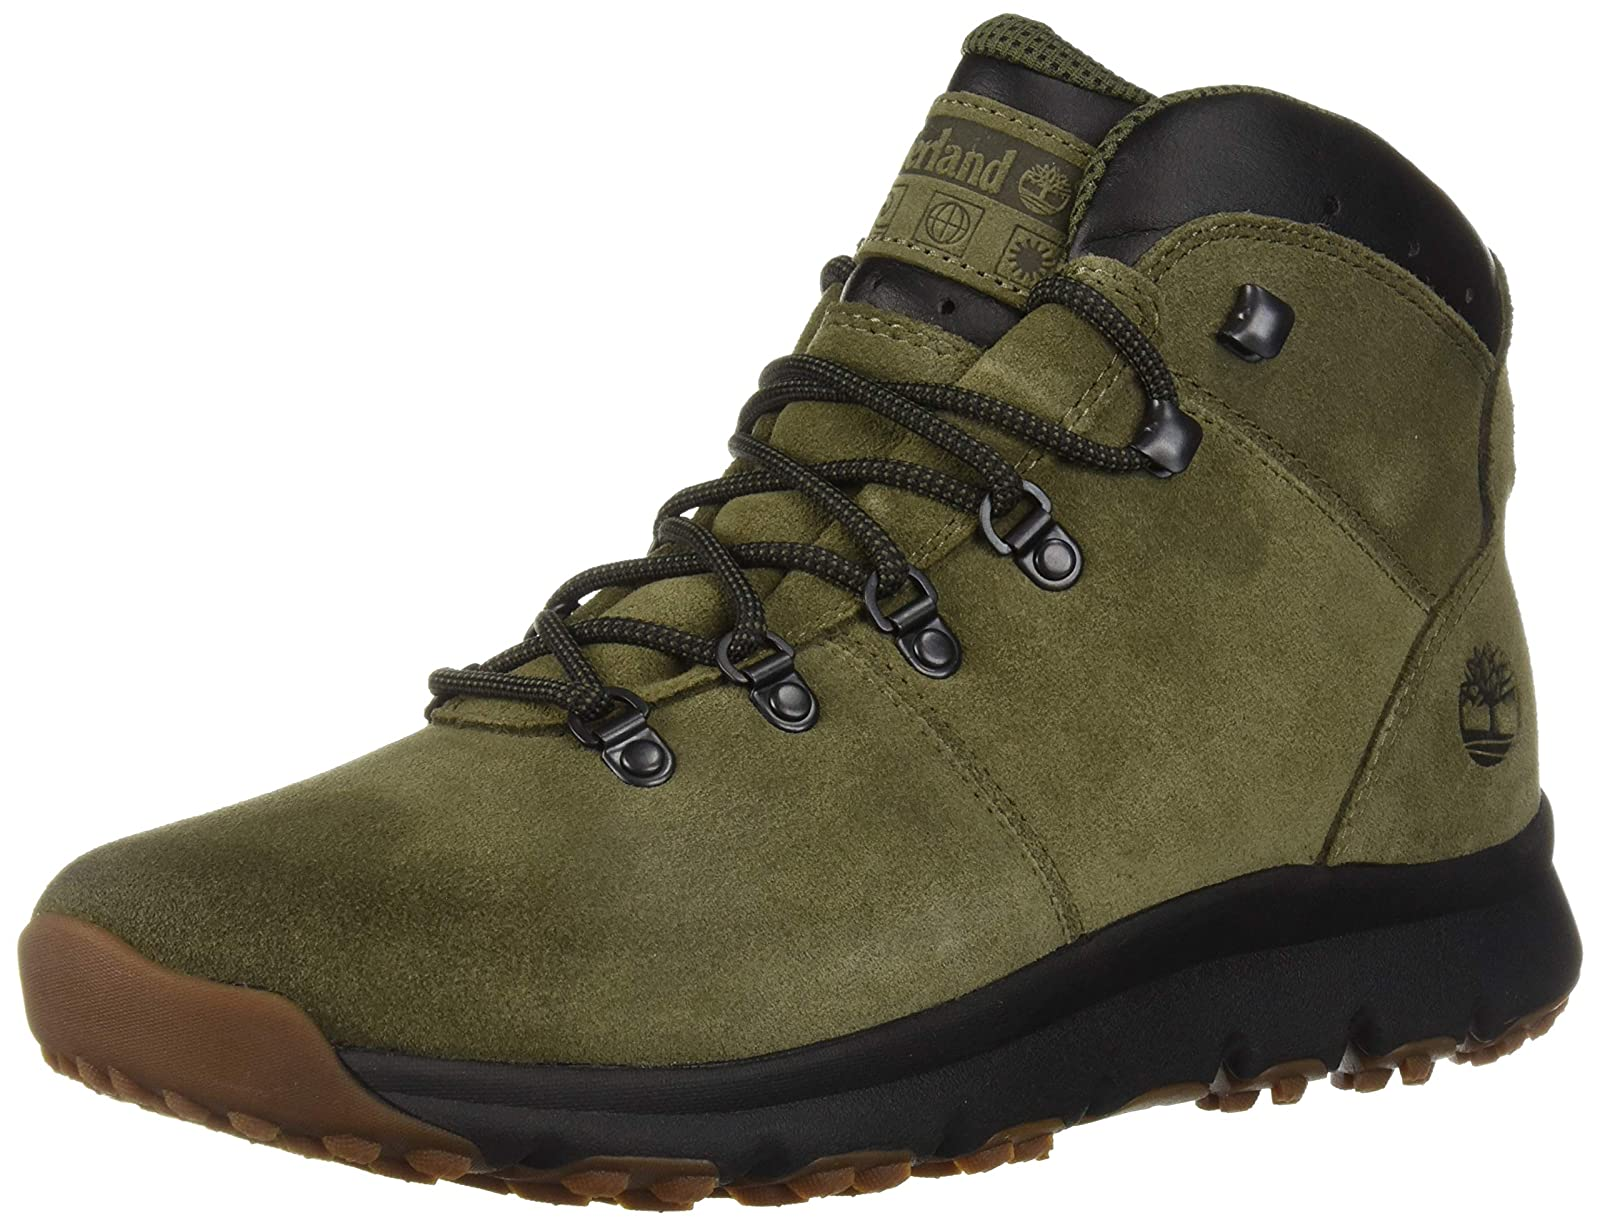 Timberland Men's World Hiker Mid Ankle TB0A1RJWA58 - 1